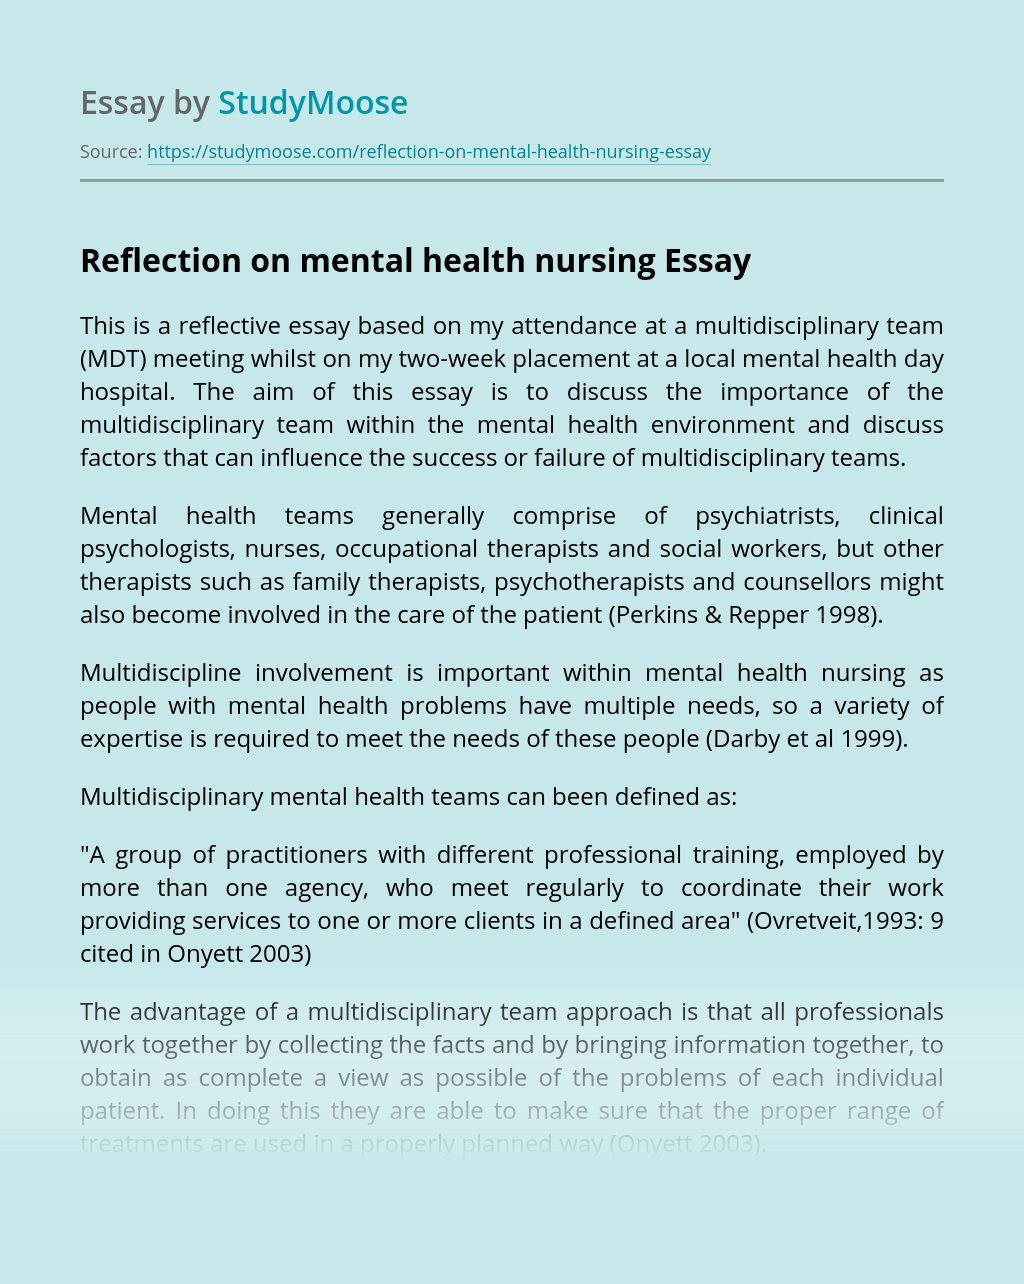 Reflection on mental health nursing